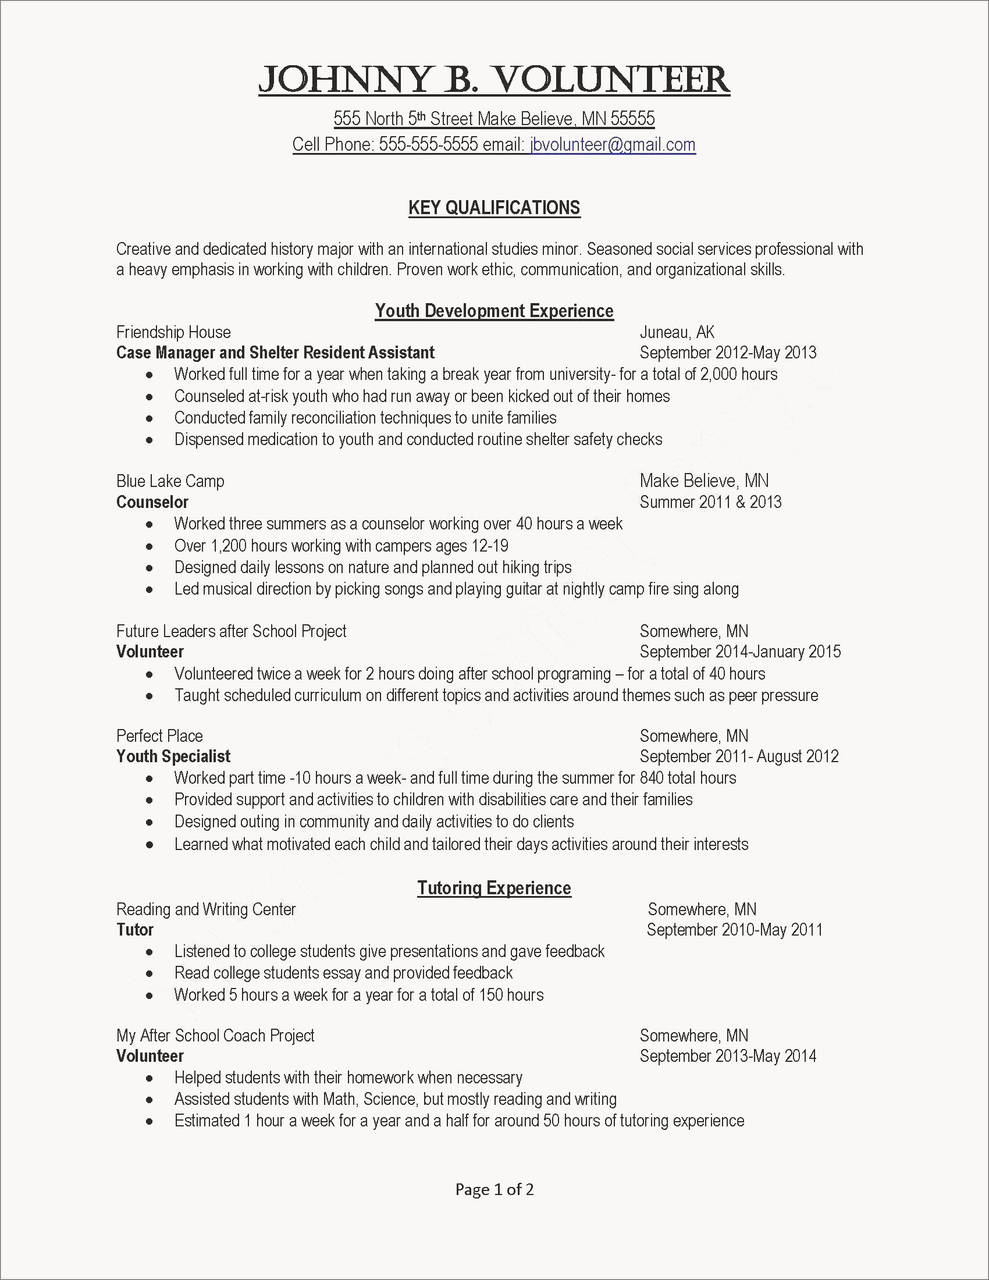 Where to Get A Resume Done Professionally - Perfect Resume Example Luxury Resumes Skills Examples Resume